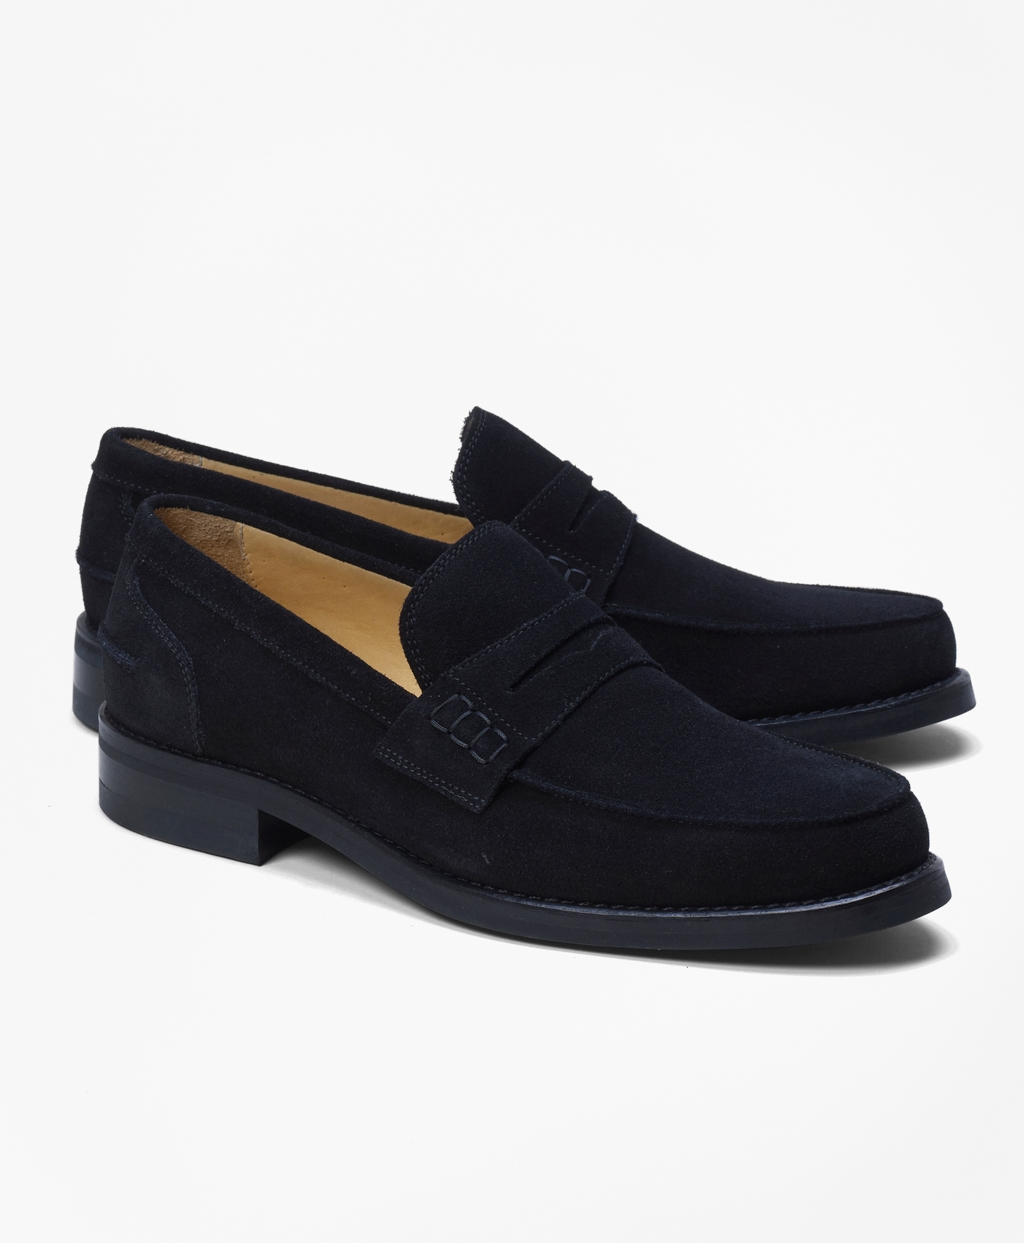 Mens Sporty Suede Penny Loafers Brooks Brothers D Island Shoes Casual Comfort Black